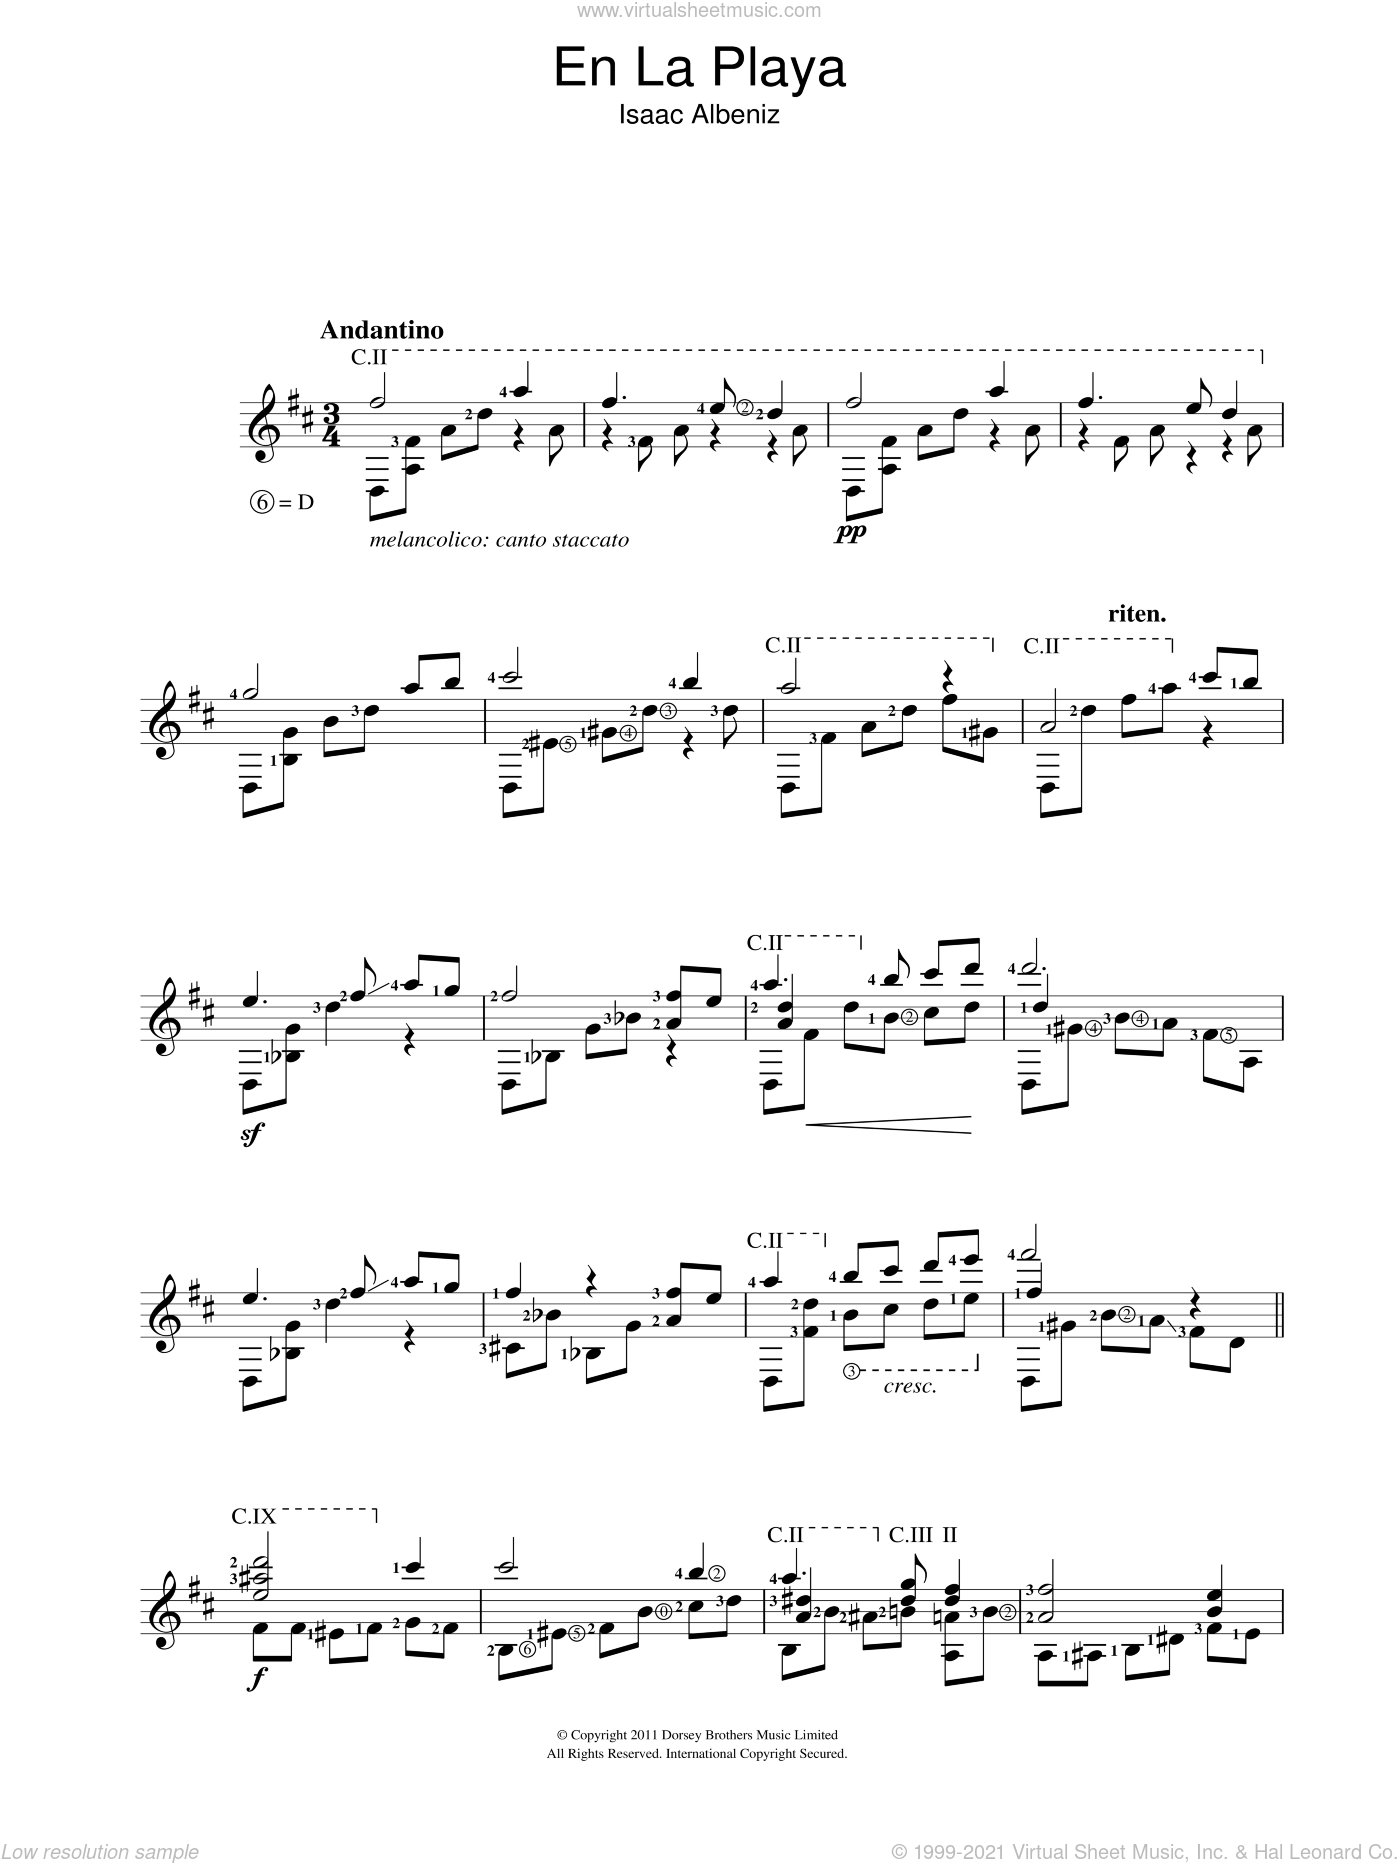 En La Playa sheet music for guitar solo (chords) by Isaac Albeniz